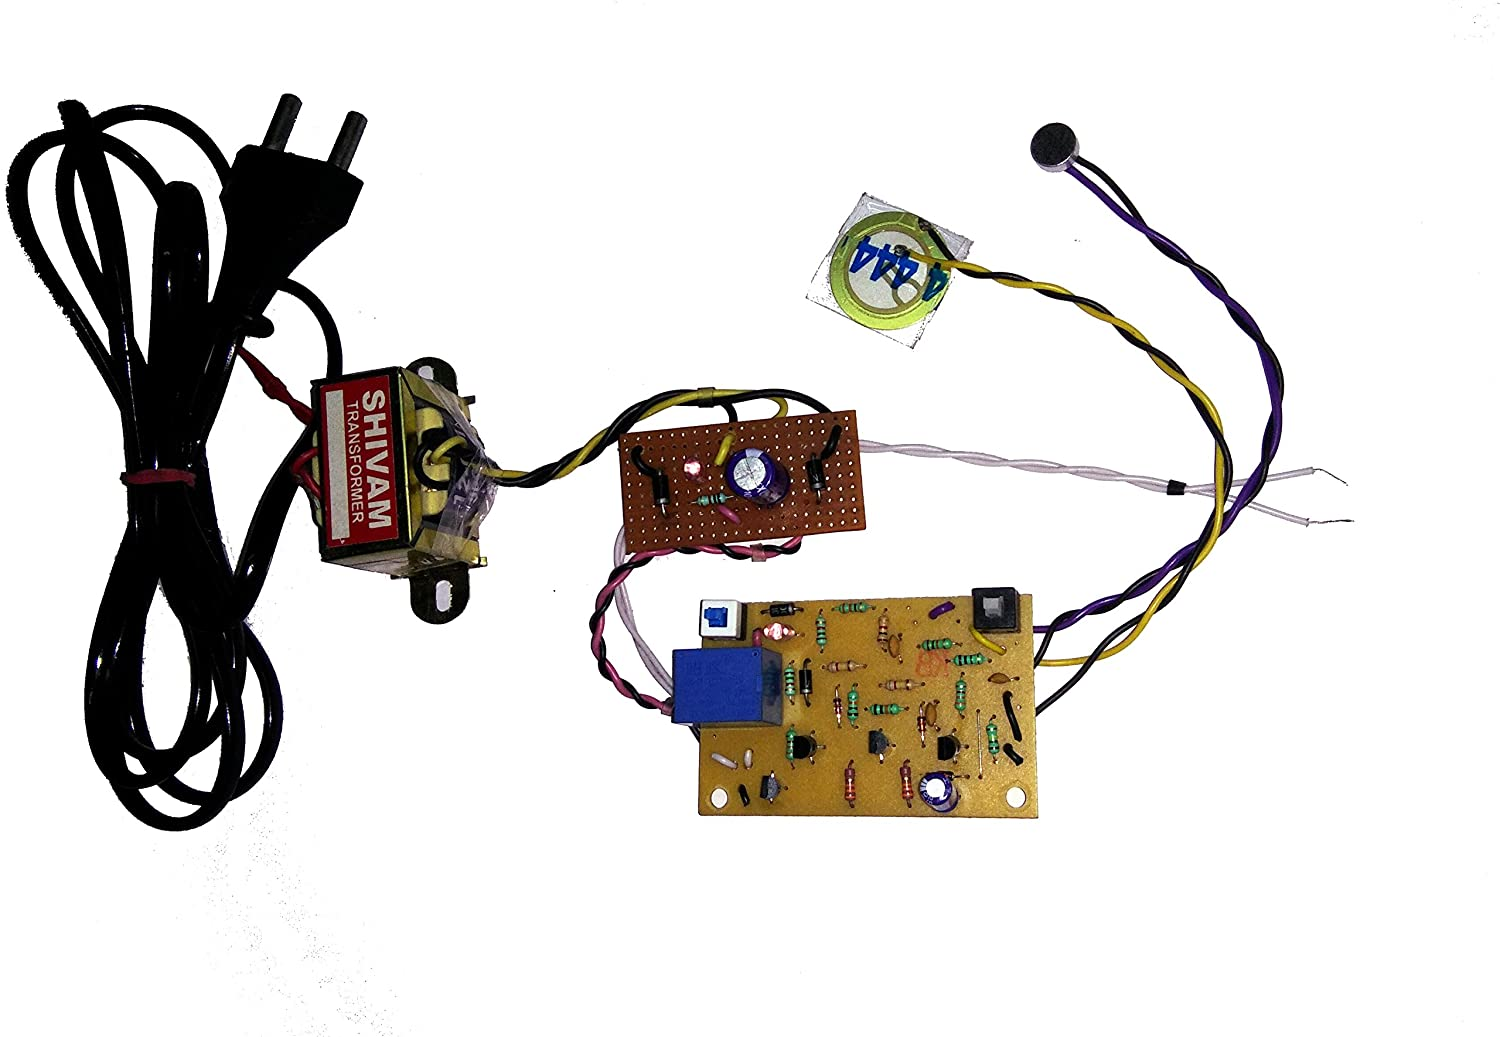 Pke Clap Sound Switch With Vibration Touch Circuit Project Simple Without Electronic Power Supply